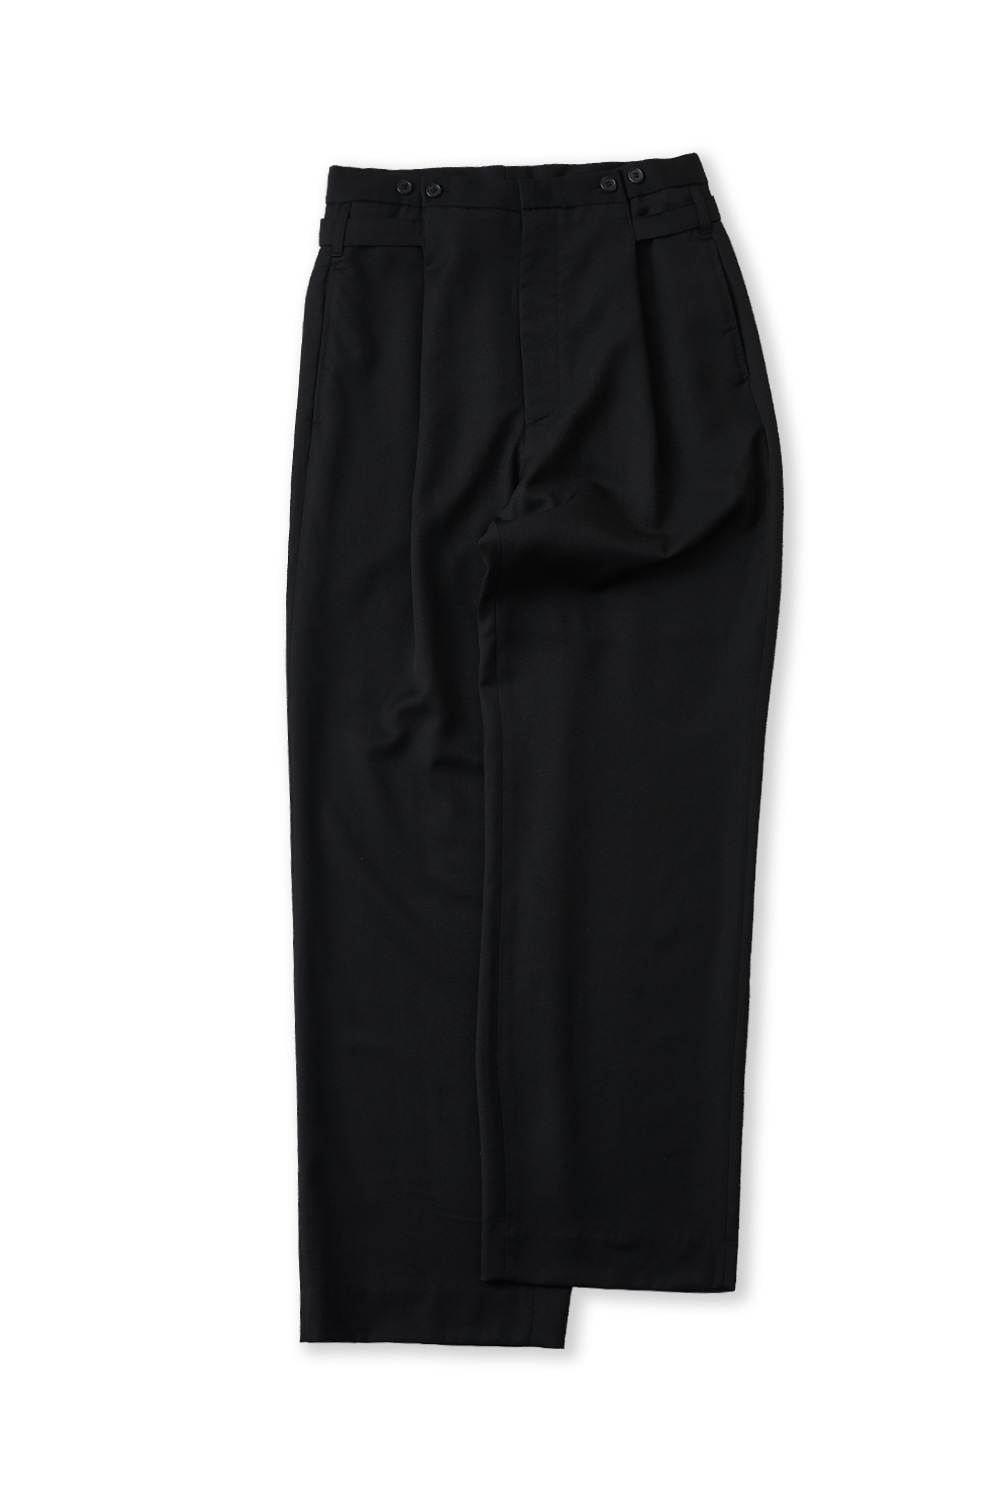 PERENN퍼렌 button wide trousers_black